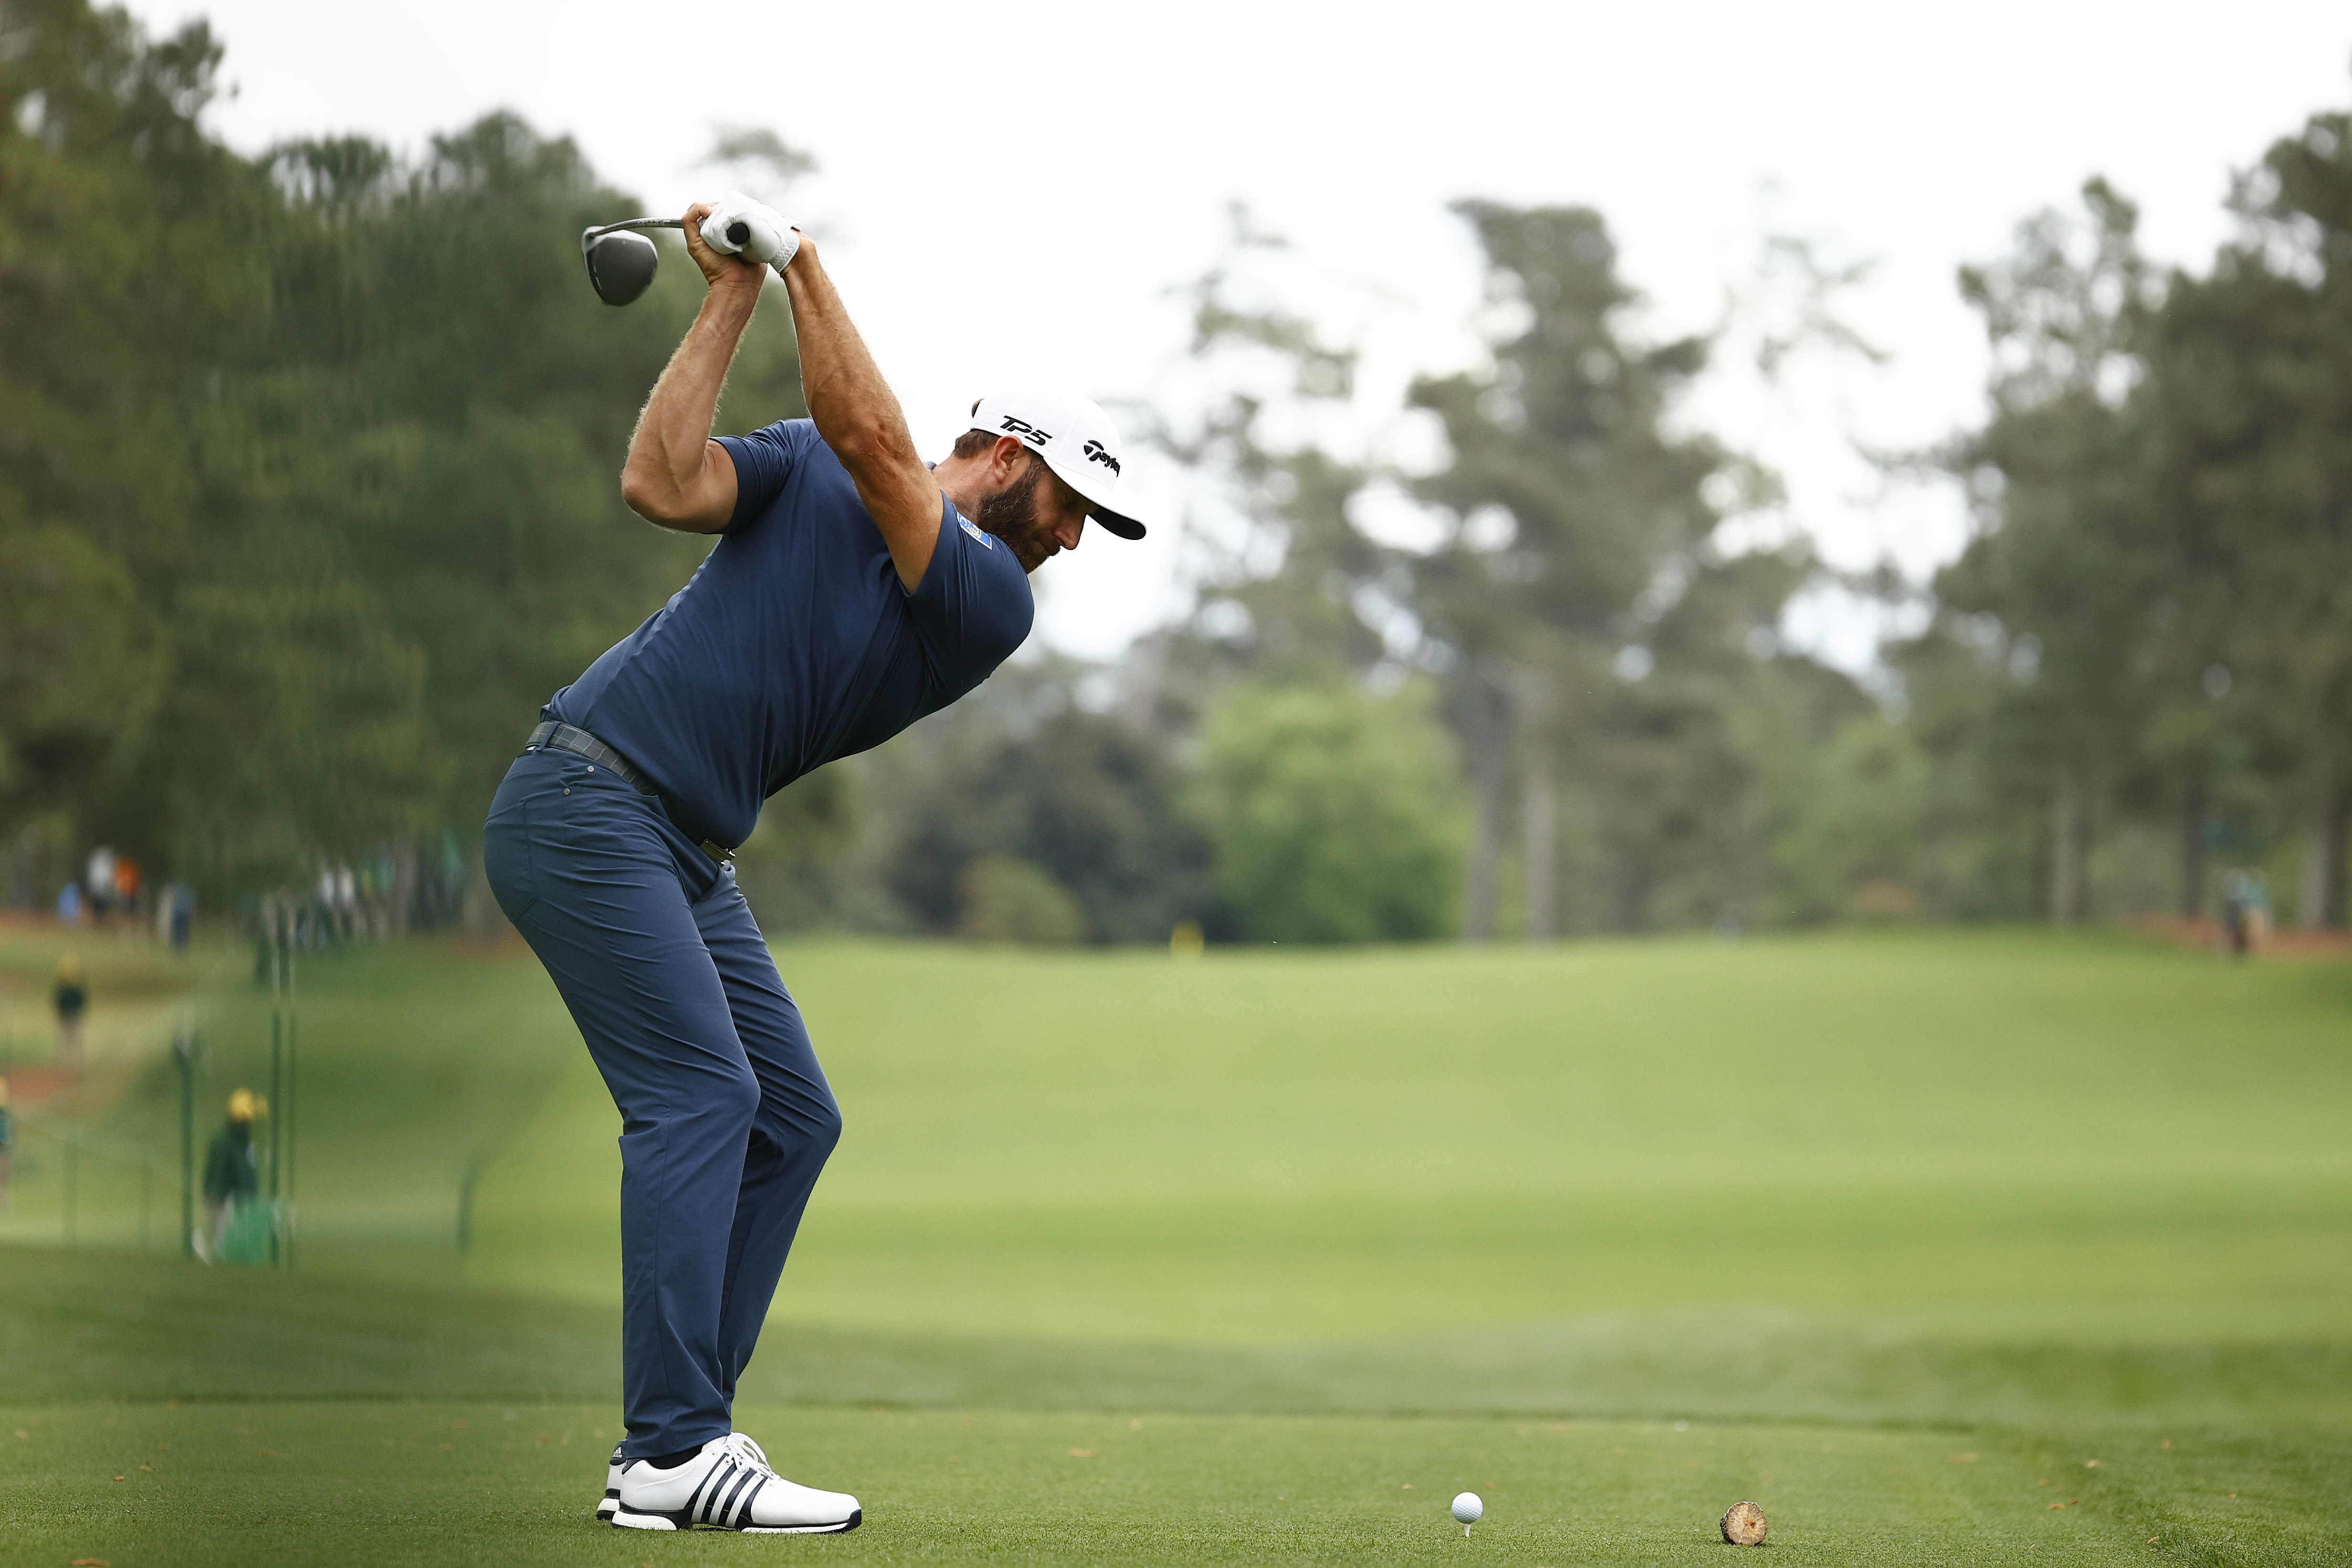 Dustin Johnson of the United States plays his shot from the 17th tee during the second round of the Masters at Augusta National Golf Club on April 09, 2021 in Augusta, Georgia.